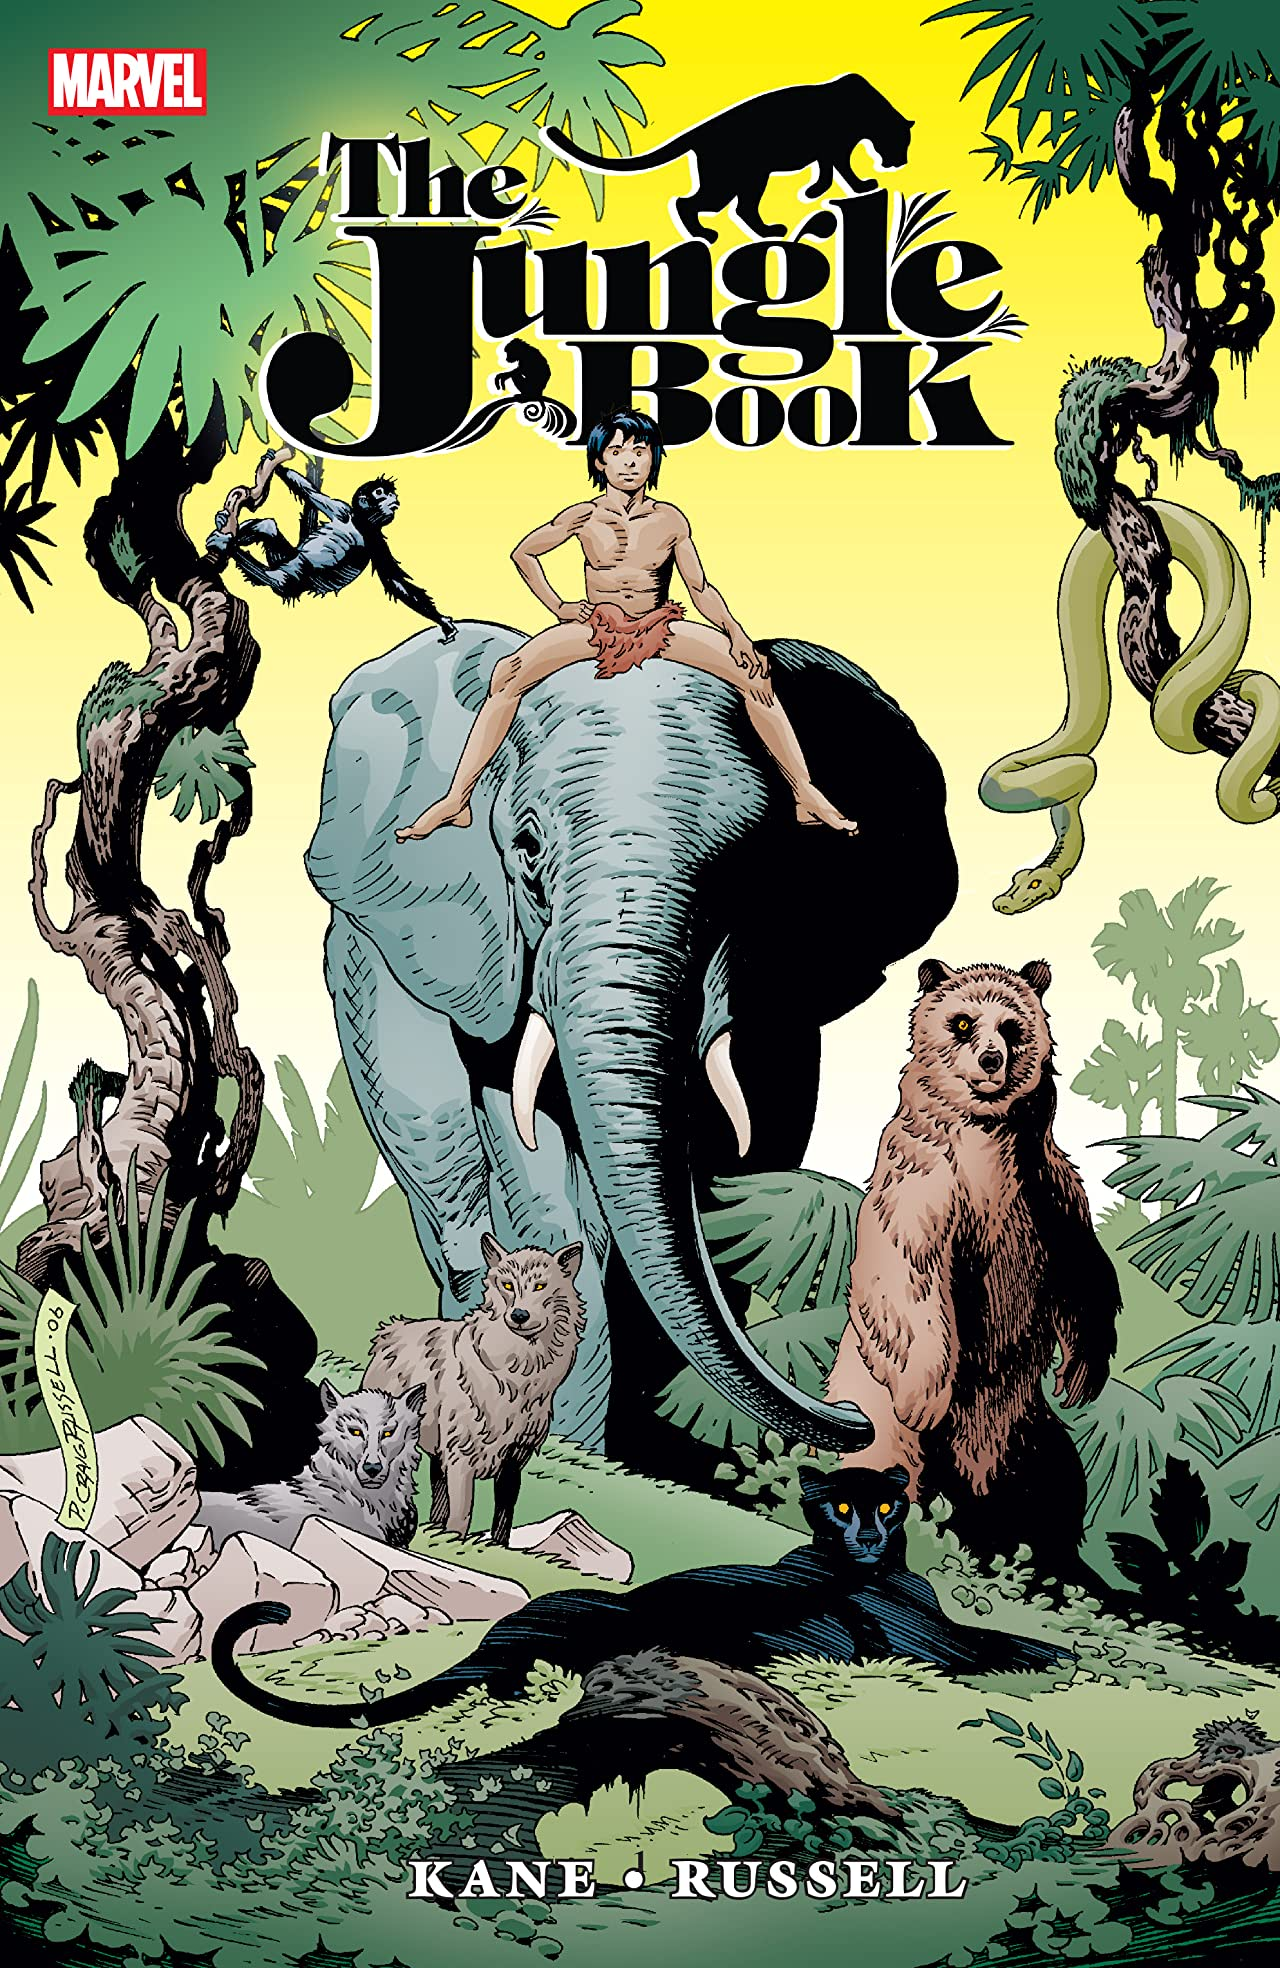 Marvel Illustrated: Jungle Book (2007) #1